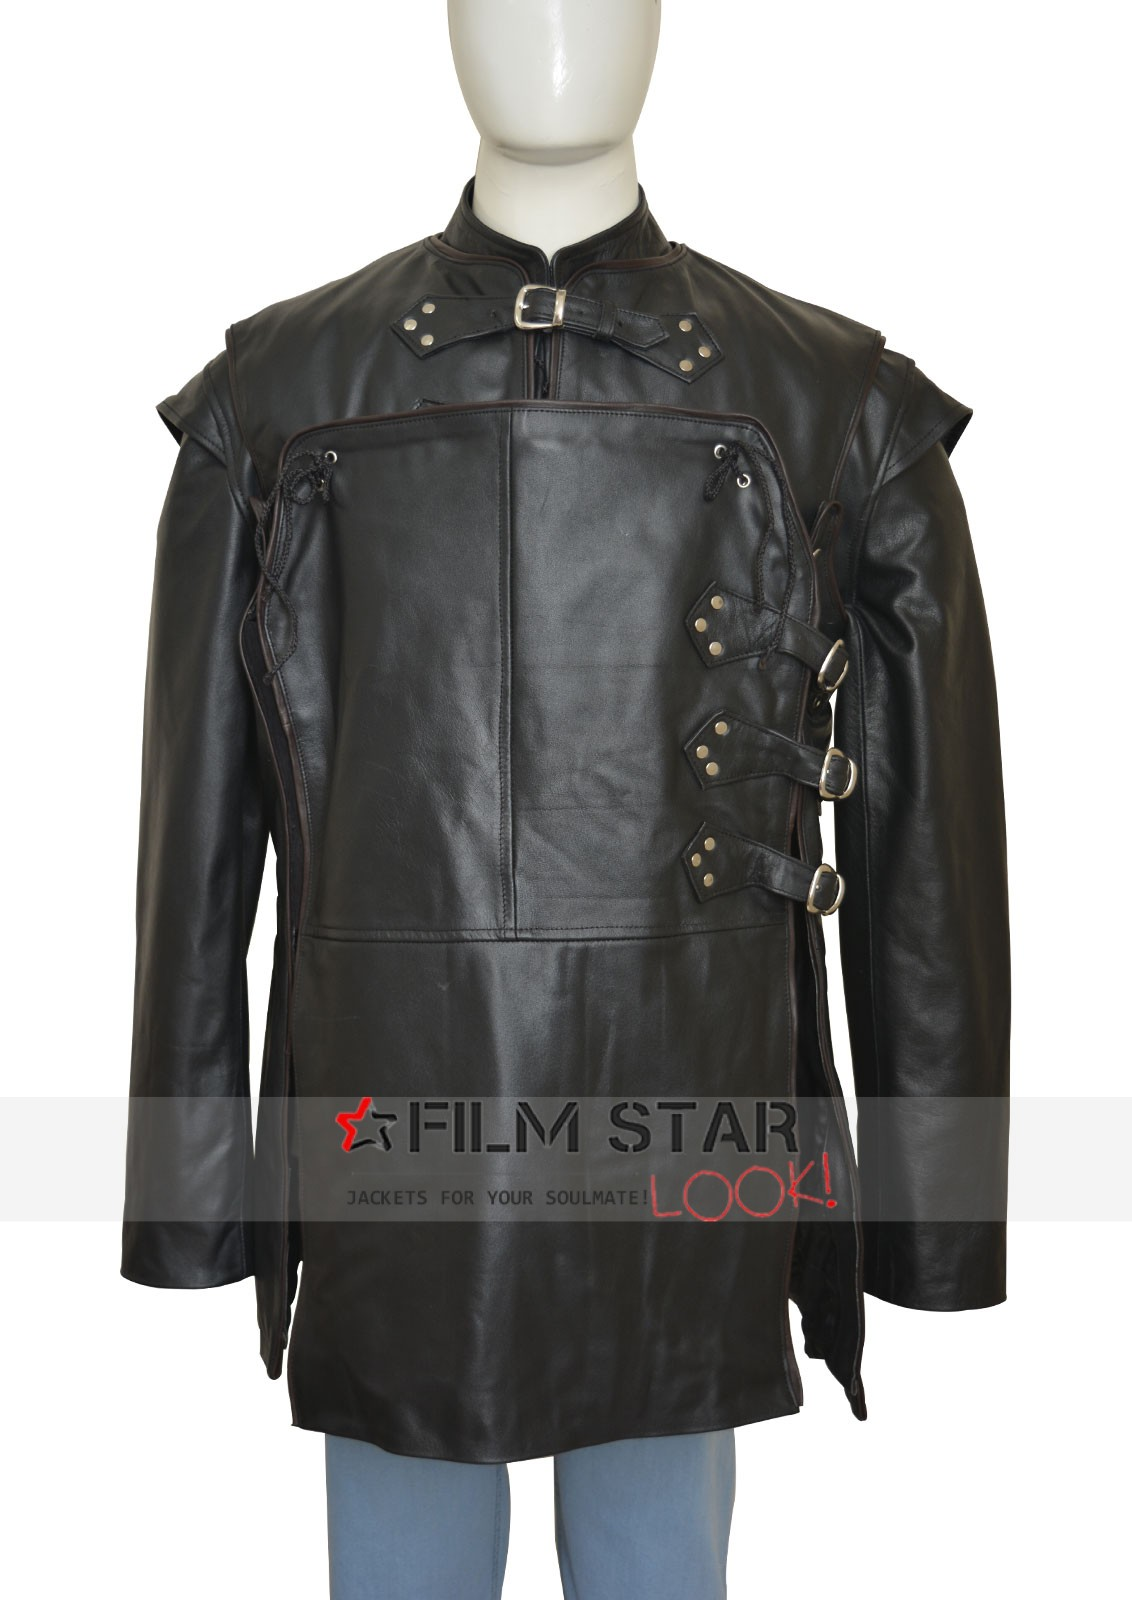 Game Of Thrones Jon Snow Kit Harington Leather Jacket